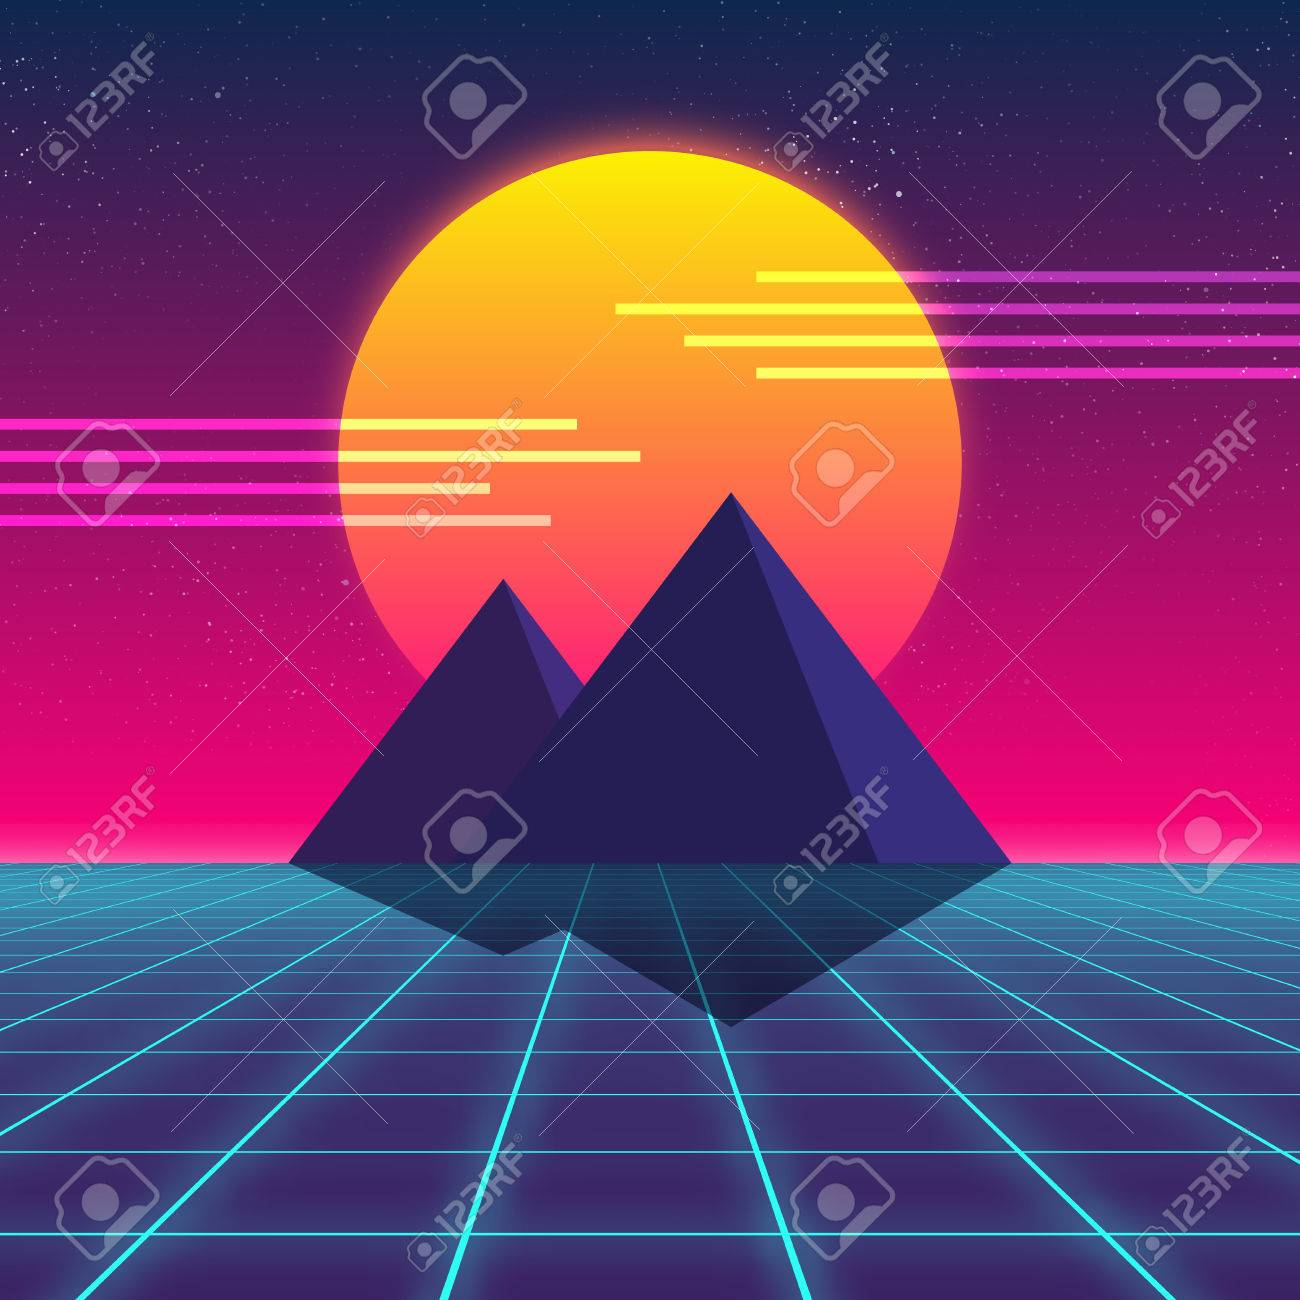 Synthwave retro design, Pyramids and sun, vector illustration Stock Illustration - 79799945